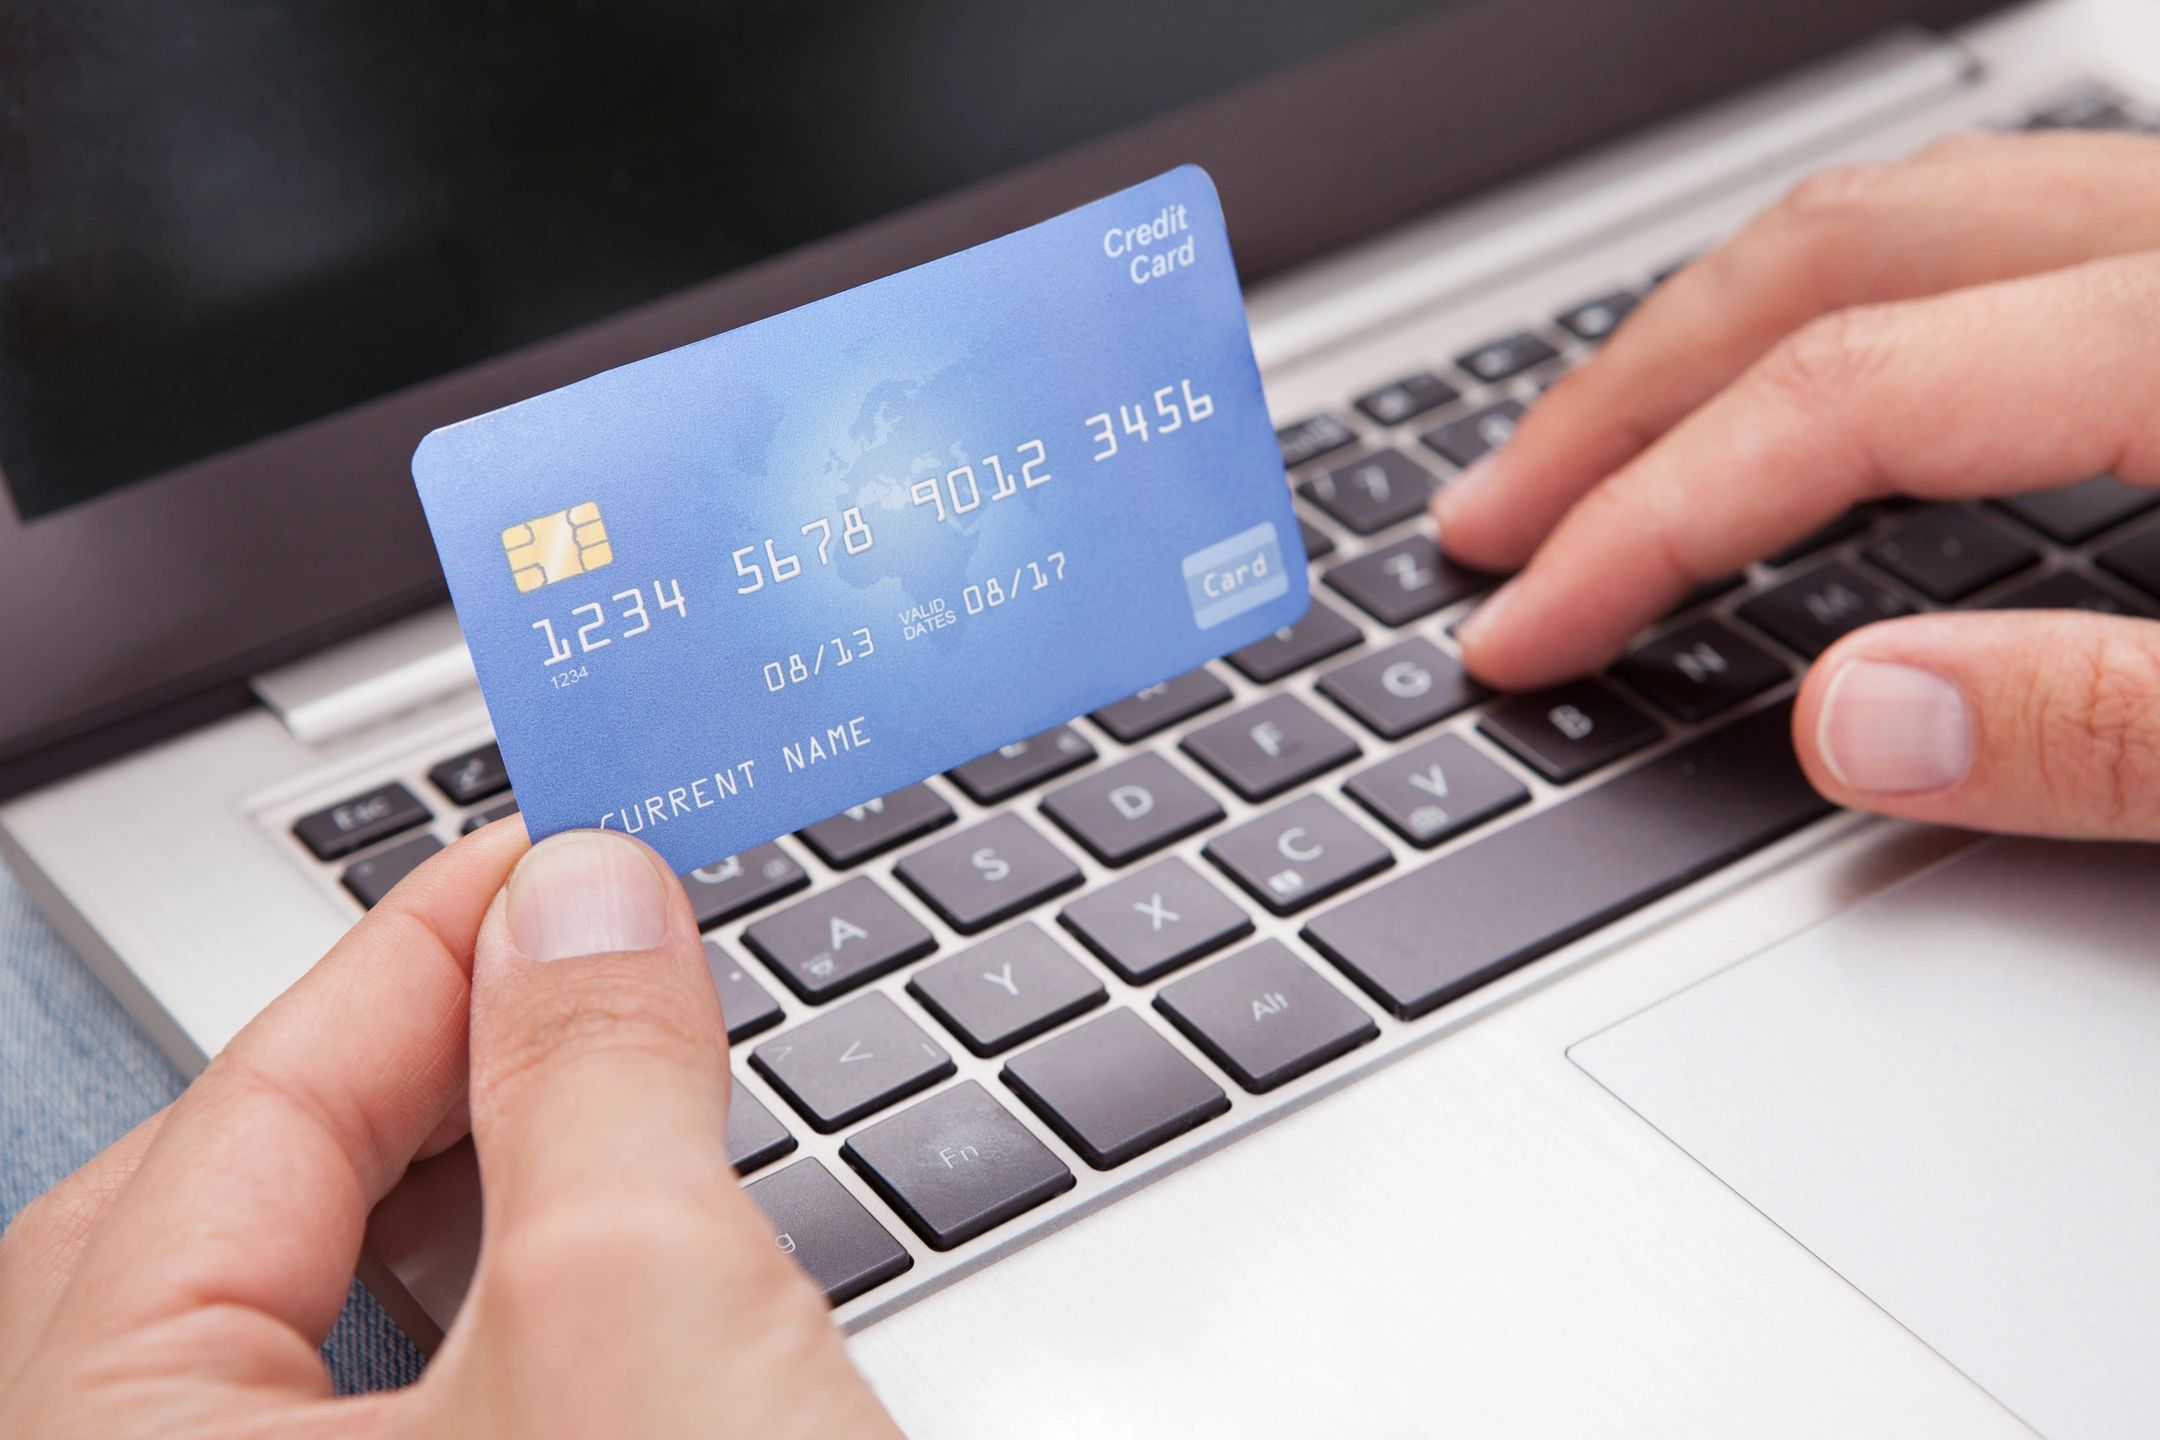 Credit card debt and relief options in Wyoming - learn more at Golden Financial Services.